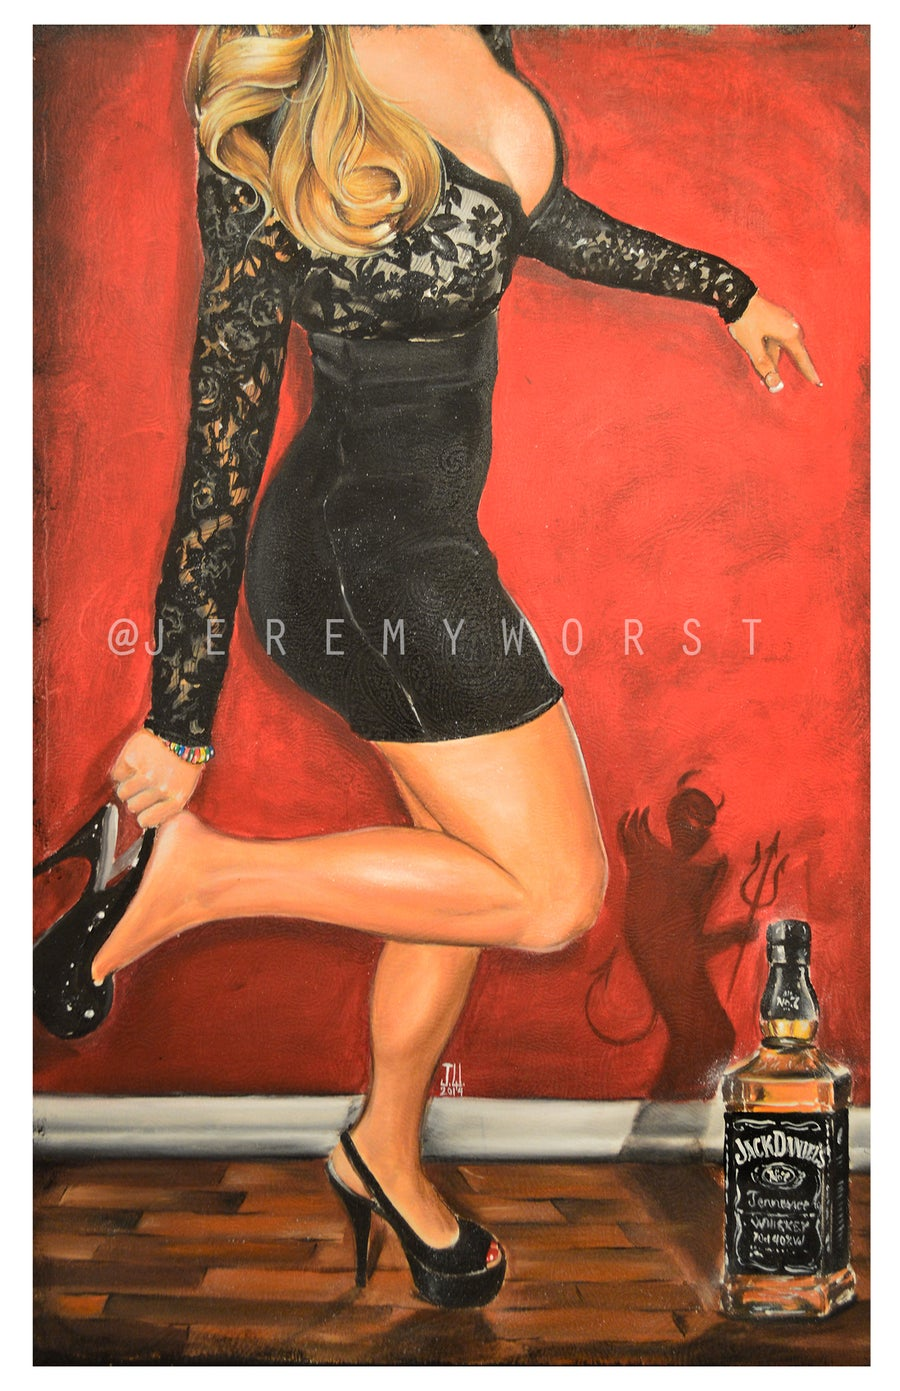 Image of JEREMY WORST Dancing with the Devil Again Artwork Signed Poster Print poster size jack daniels